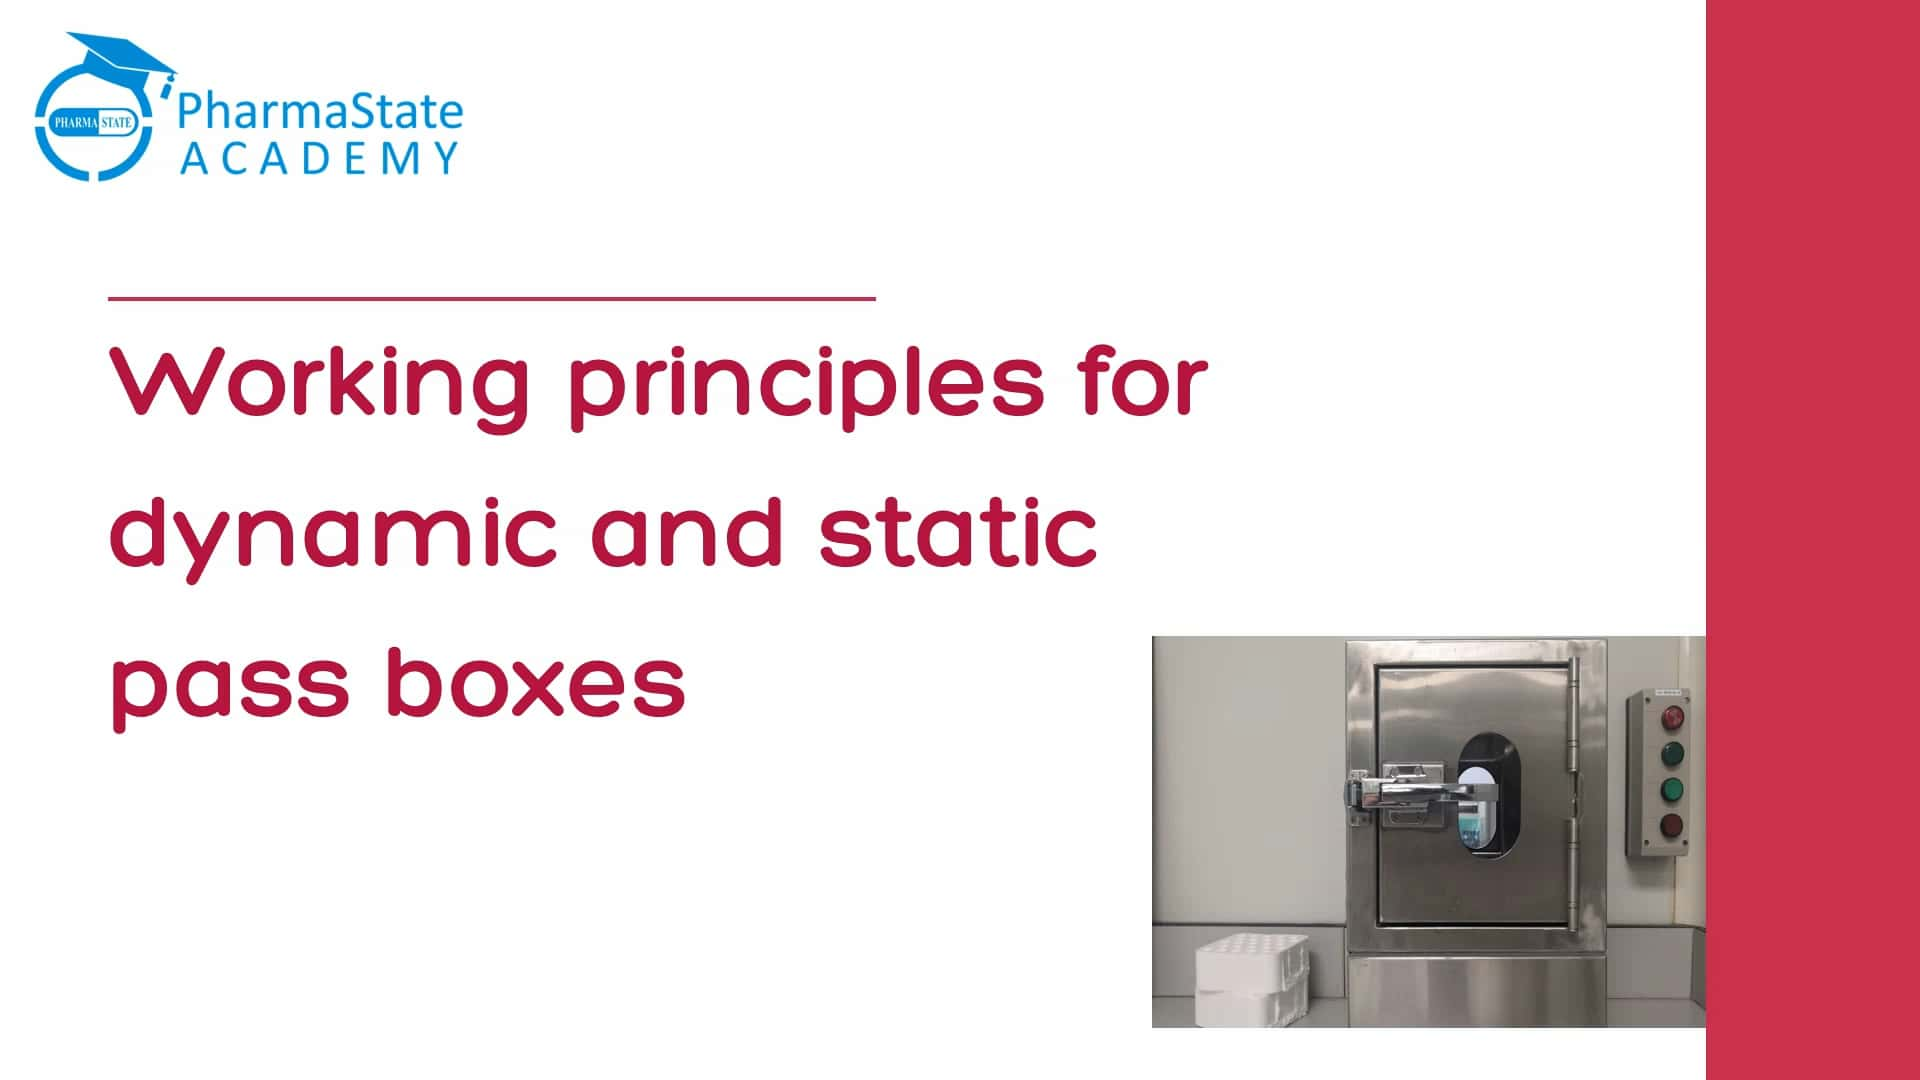 Working principles for dynamic and static pass boxes